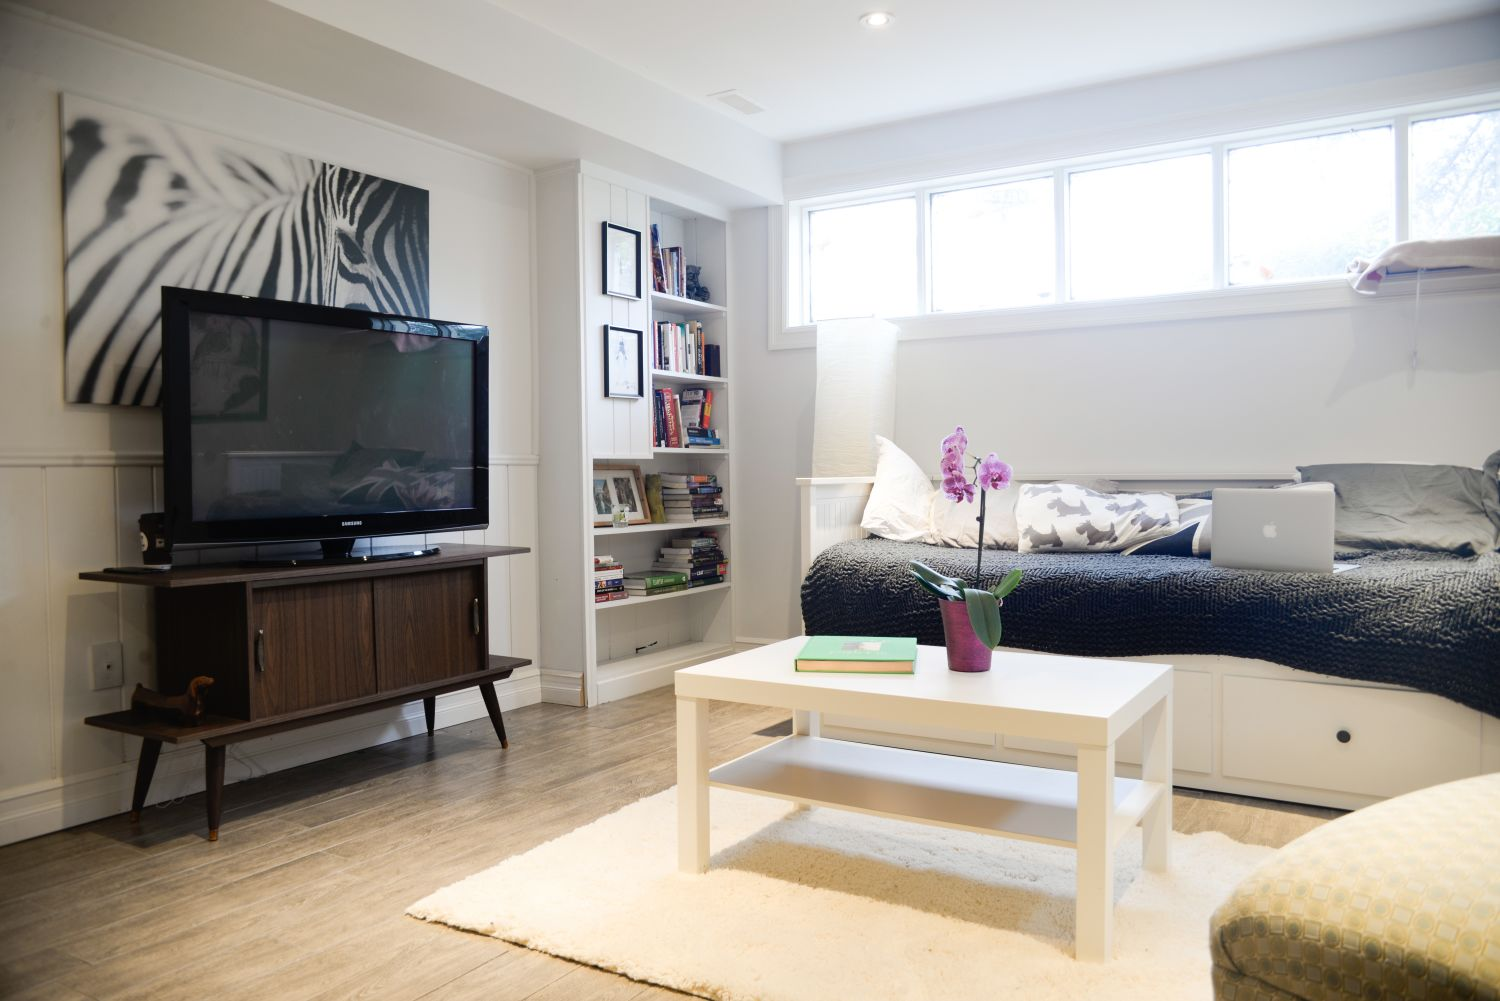 Pros & Cons Of Renting (or Buying) A Basement Apartment